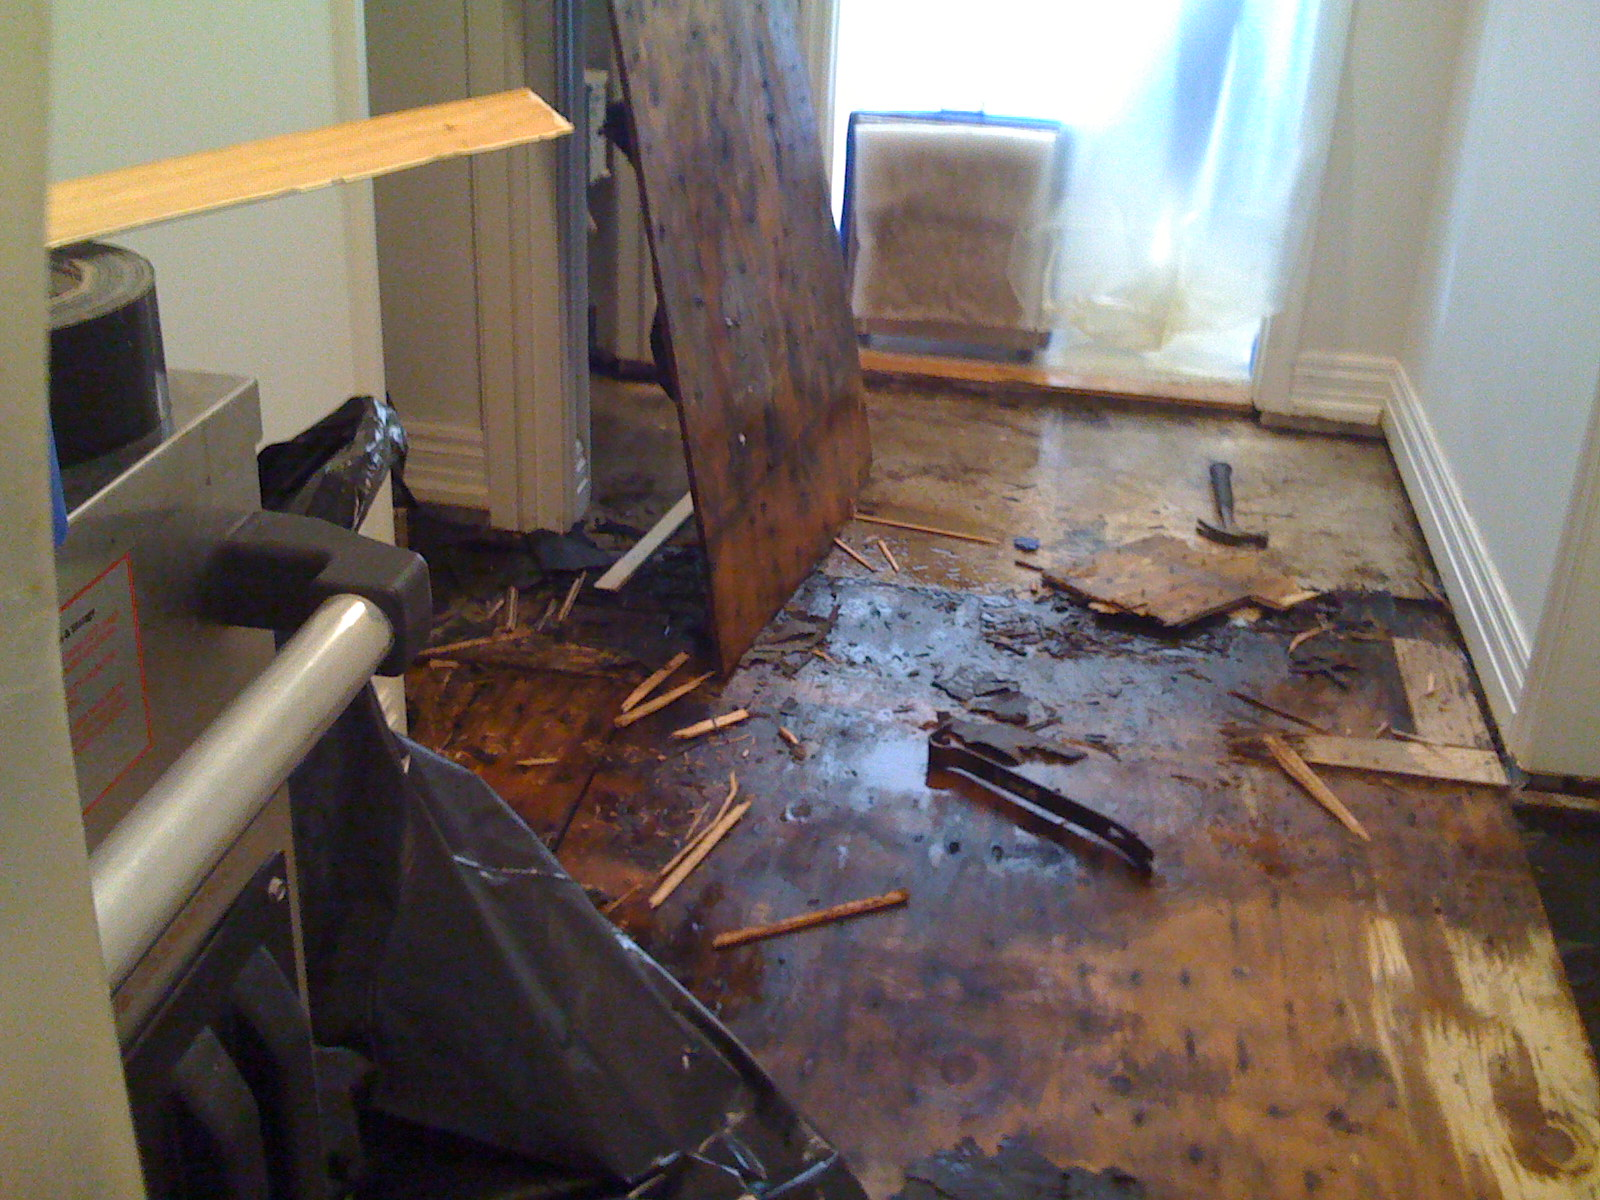 What Are The Effects of Water Damage?